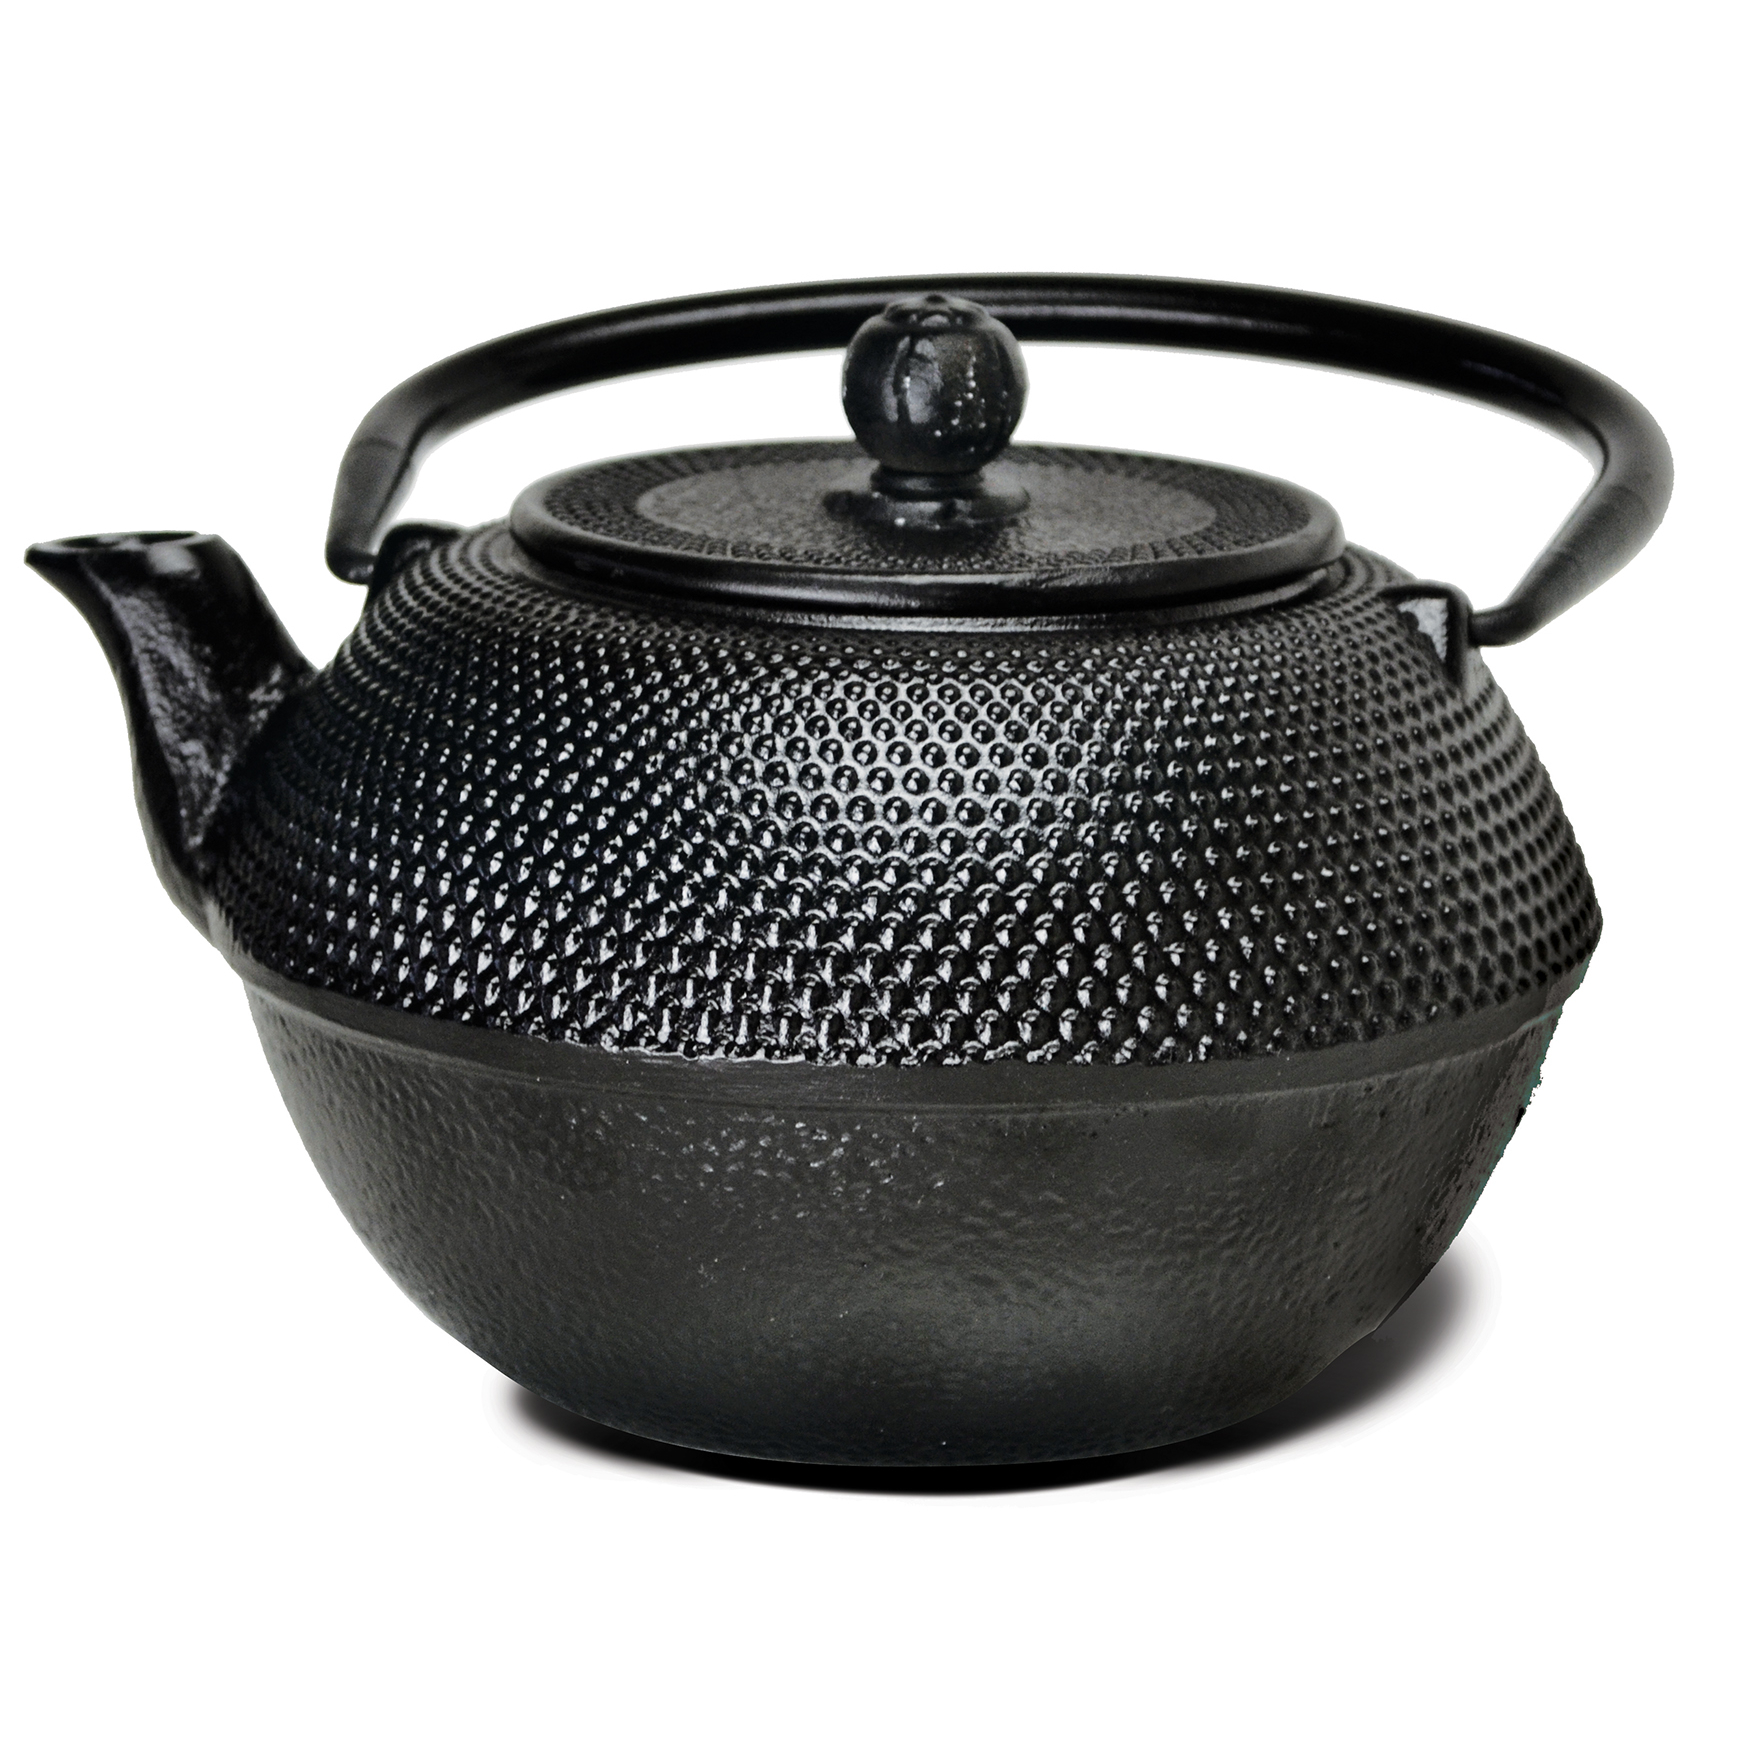 Primula Hammered 36 Oz. Cast Iron Teapot With Enameled Interior And Stainless Steel Loose Leaf Tea Infuser (Box) - Black